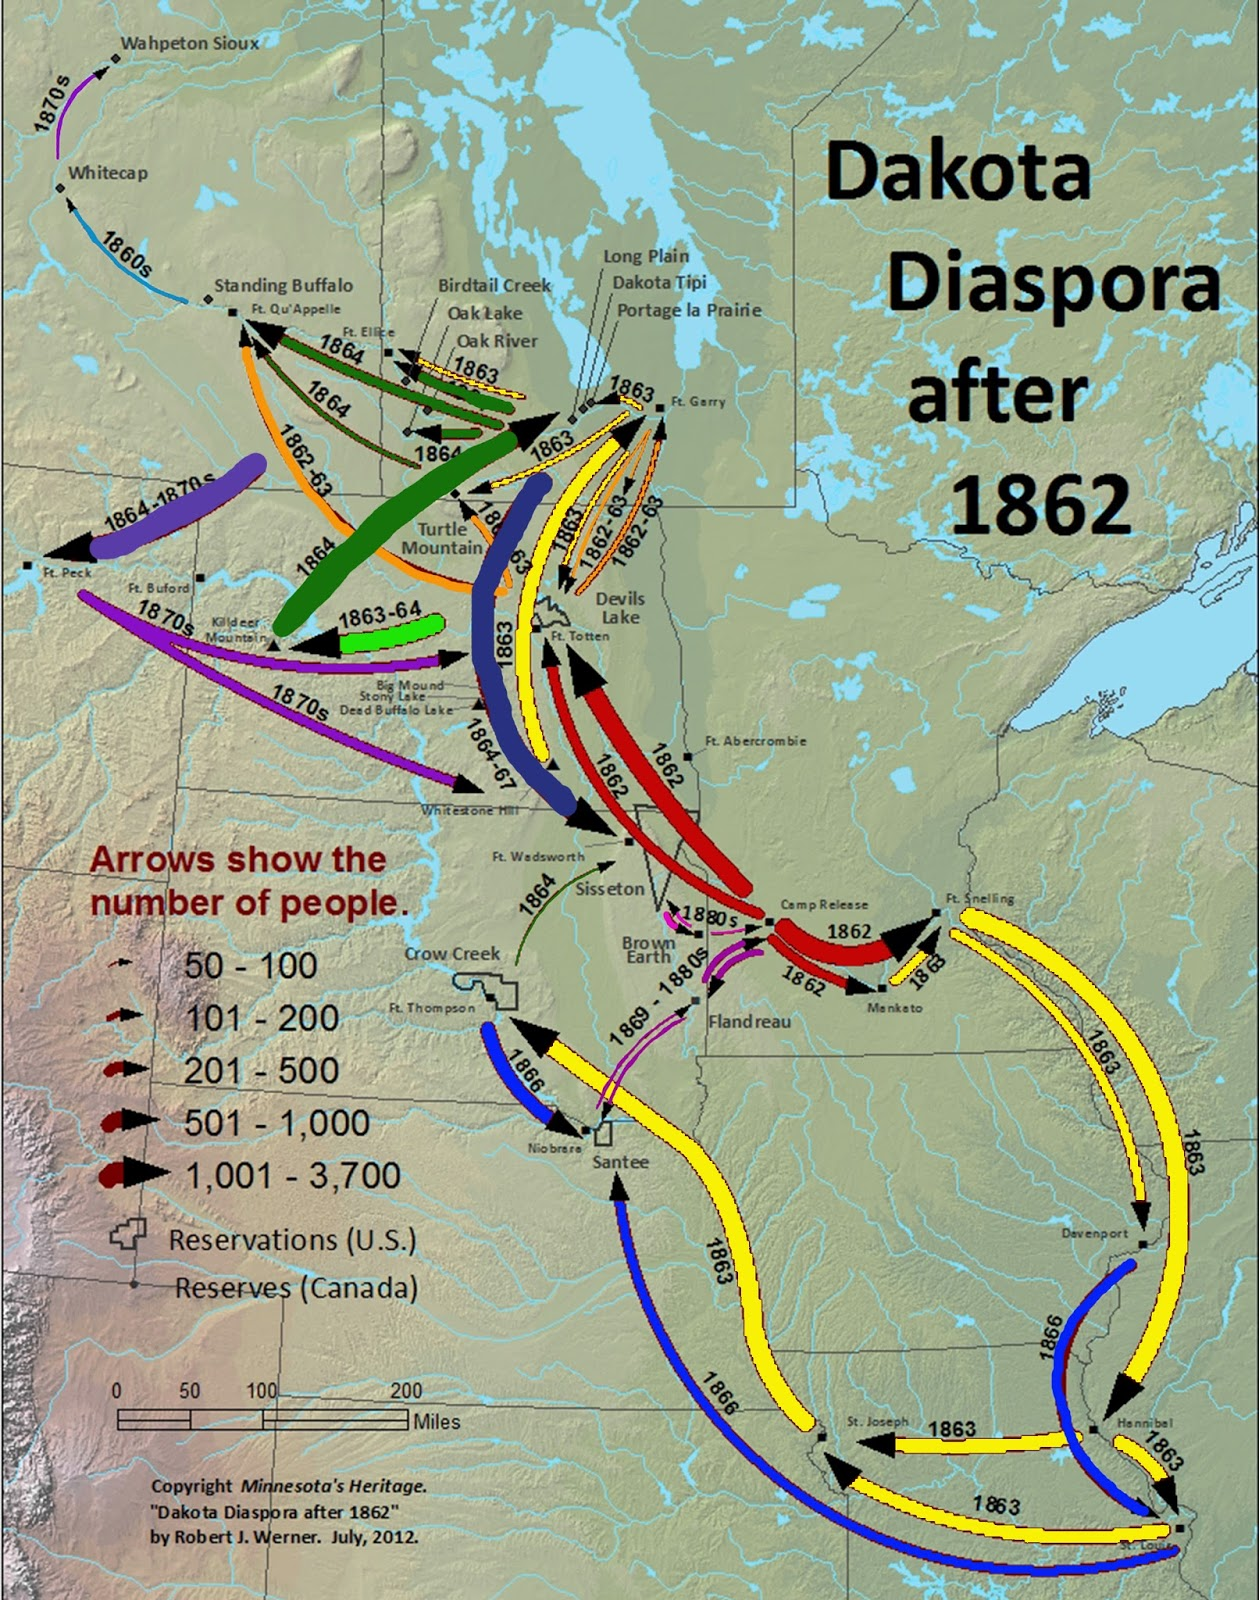 in my research i came across dakota diaspora after 1862 which was published in a 2012 issue of minnesota s heritage magazine created by geographer